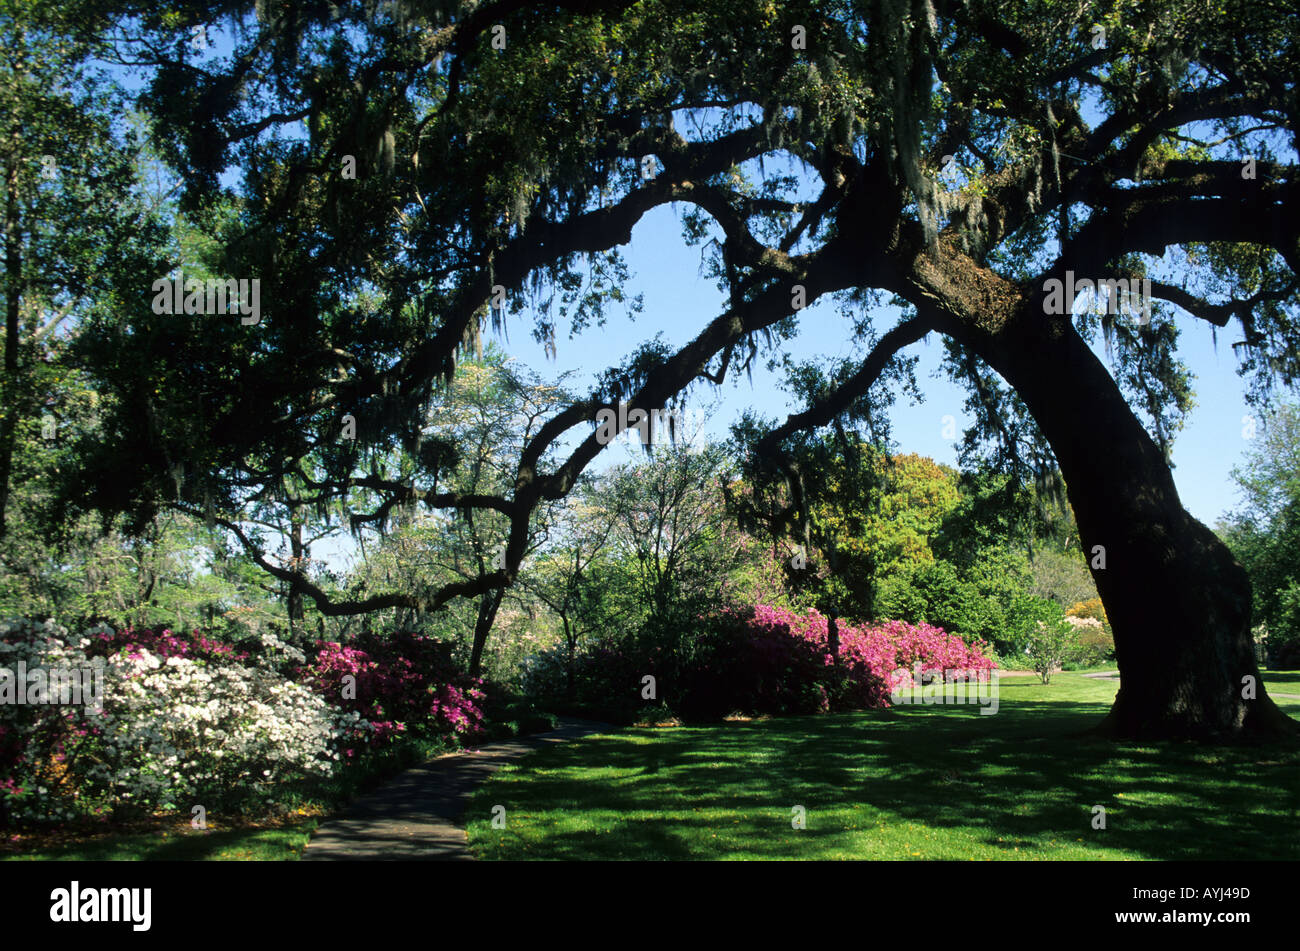 Brookgreen gardens in south carolina murrells inlet stock photo royalty free image 3171484 alamy for Brookgreen gardens south carolina